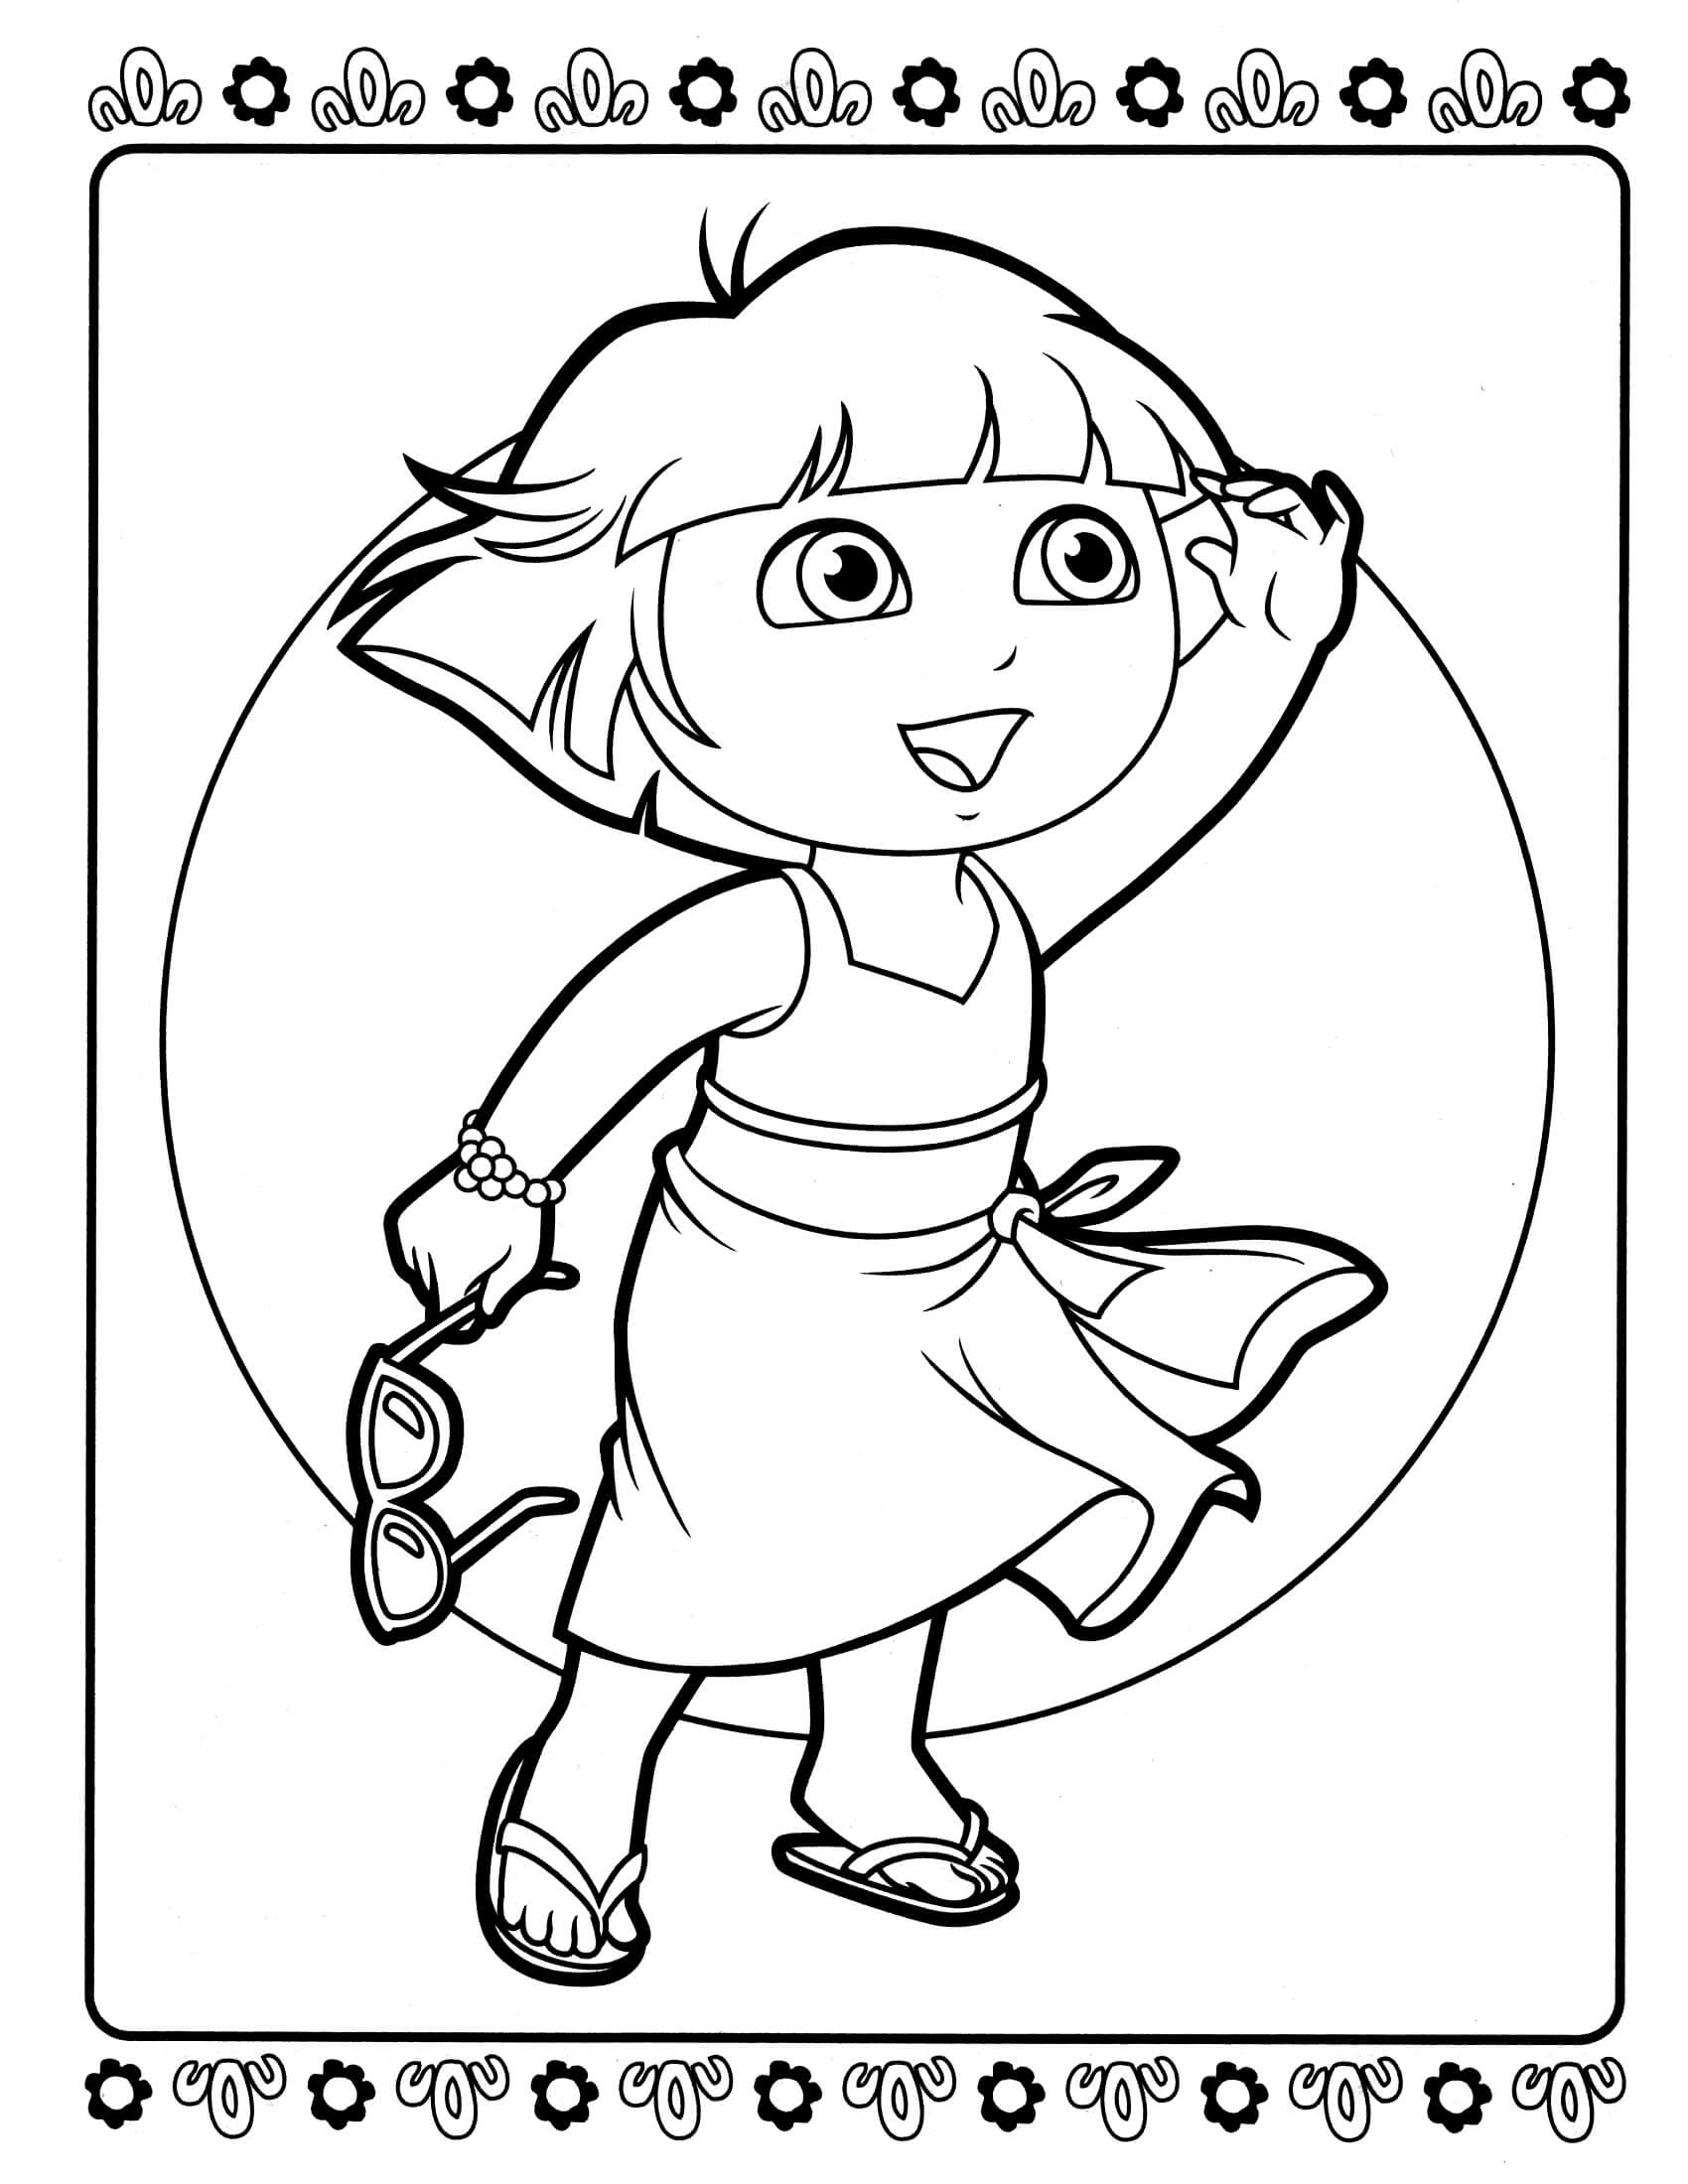 dora coloring print download dora coloring pages to learn new things coloring dora 1 1